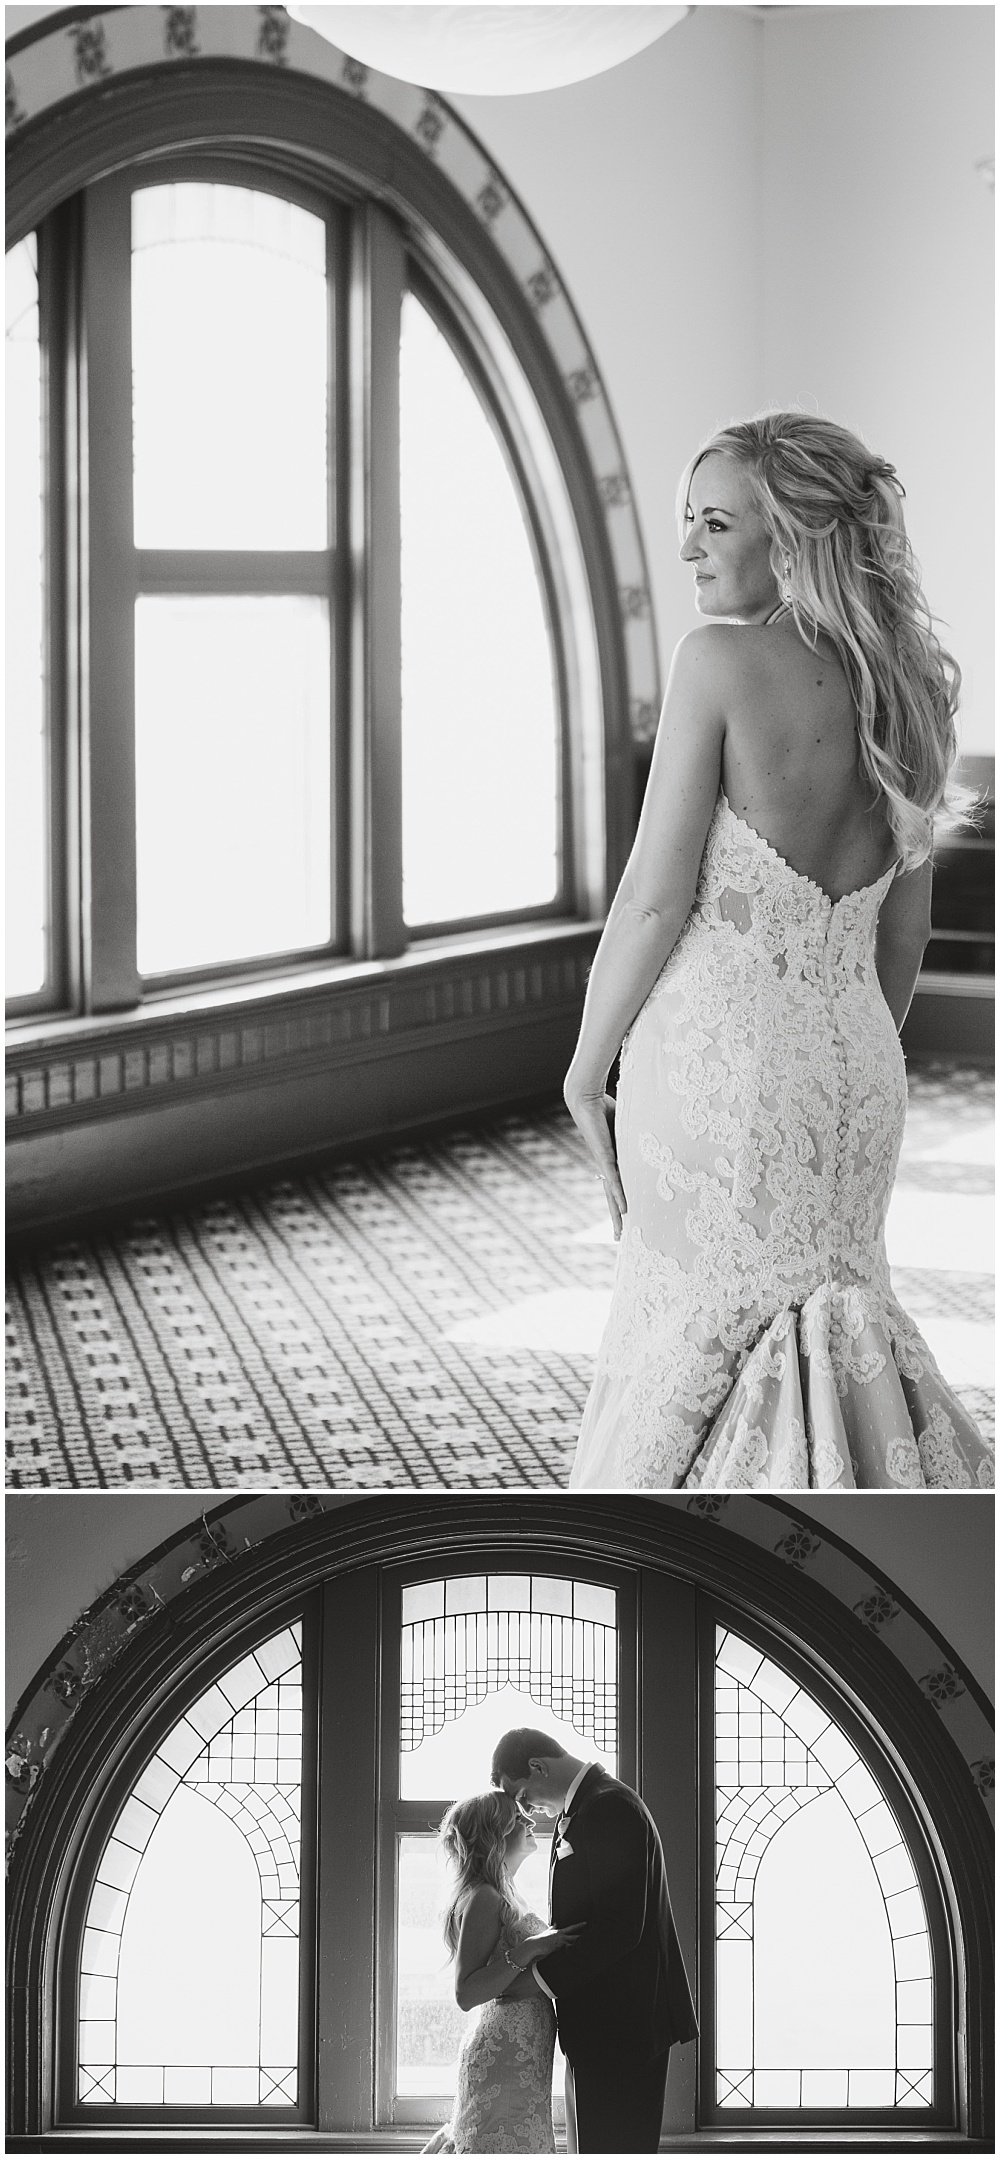 Black and white bride and groom portraits | Downtown Indianapolis Wedding by Gabrielle Cheikh Photography & Jessica Dum Wedding Coordination